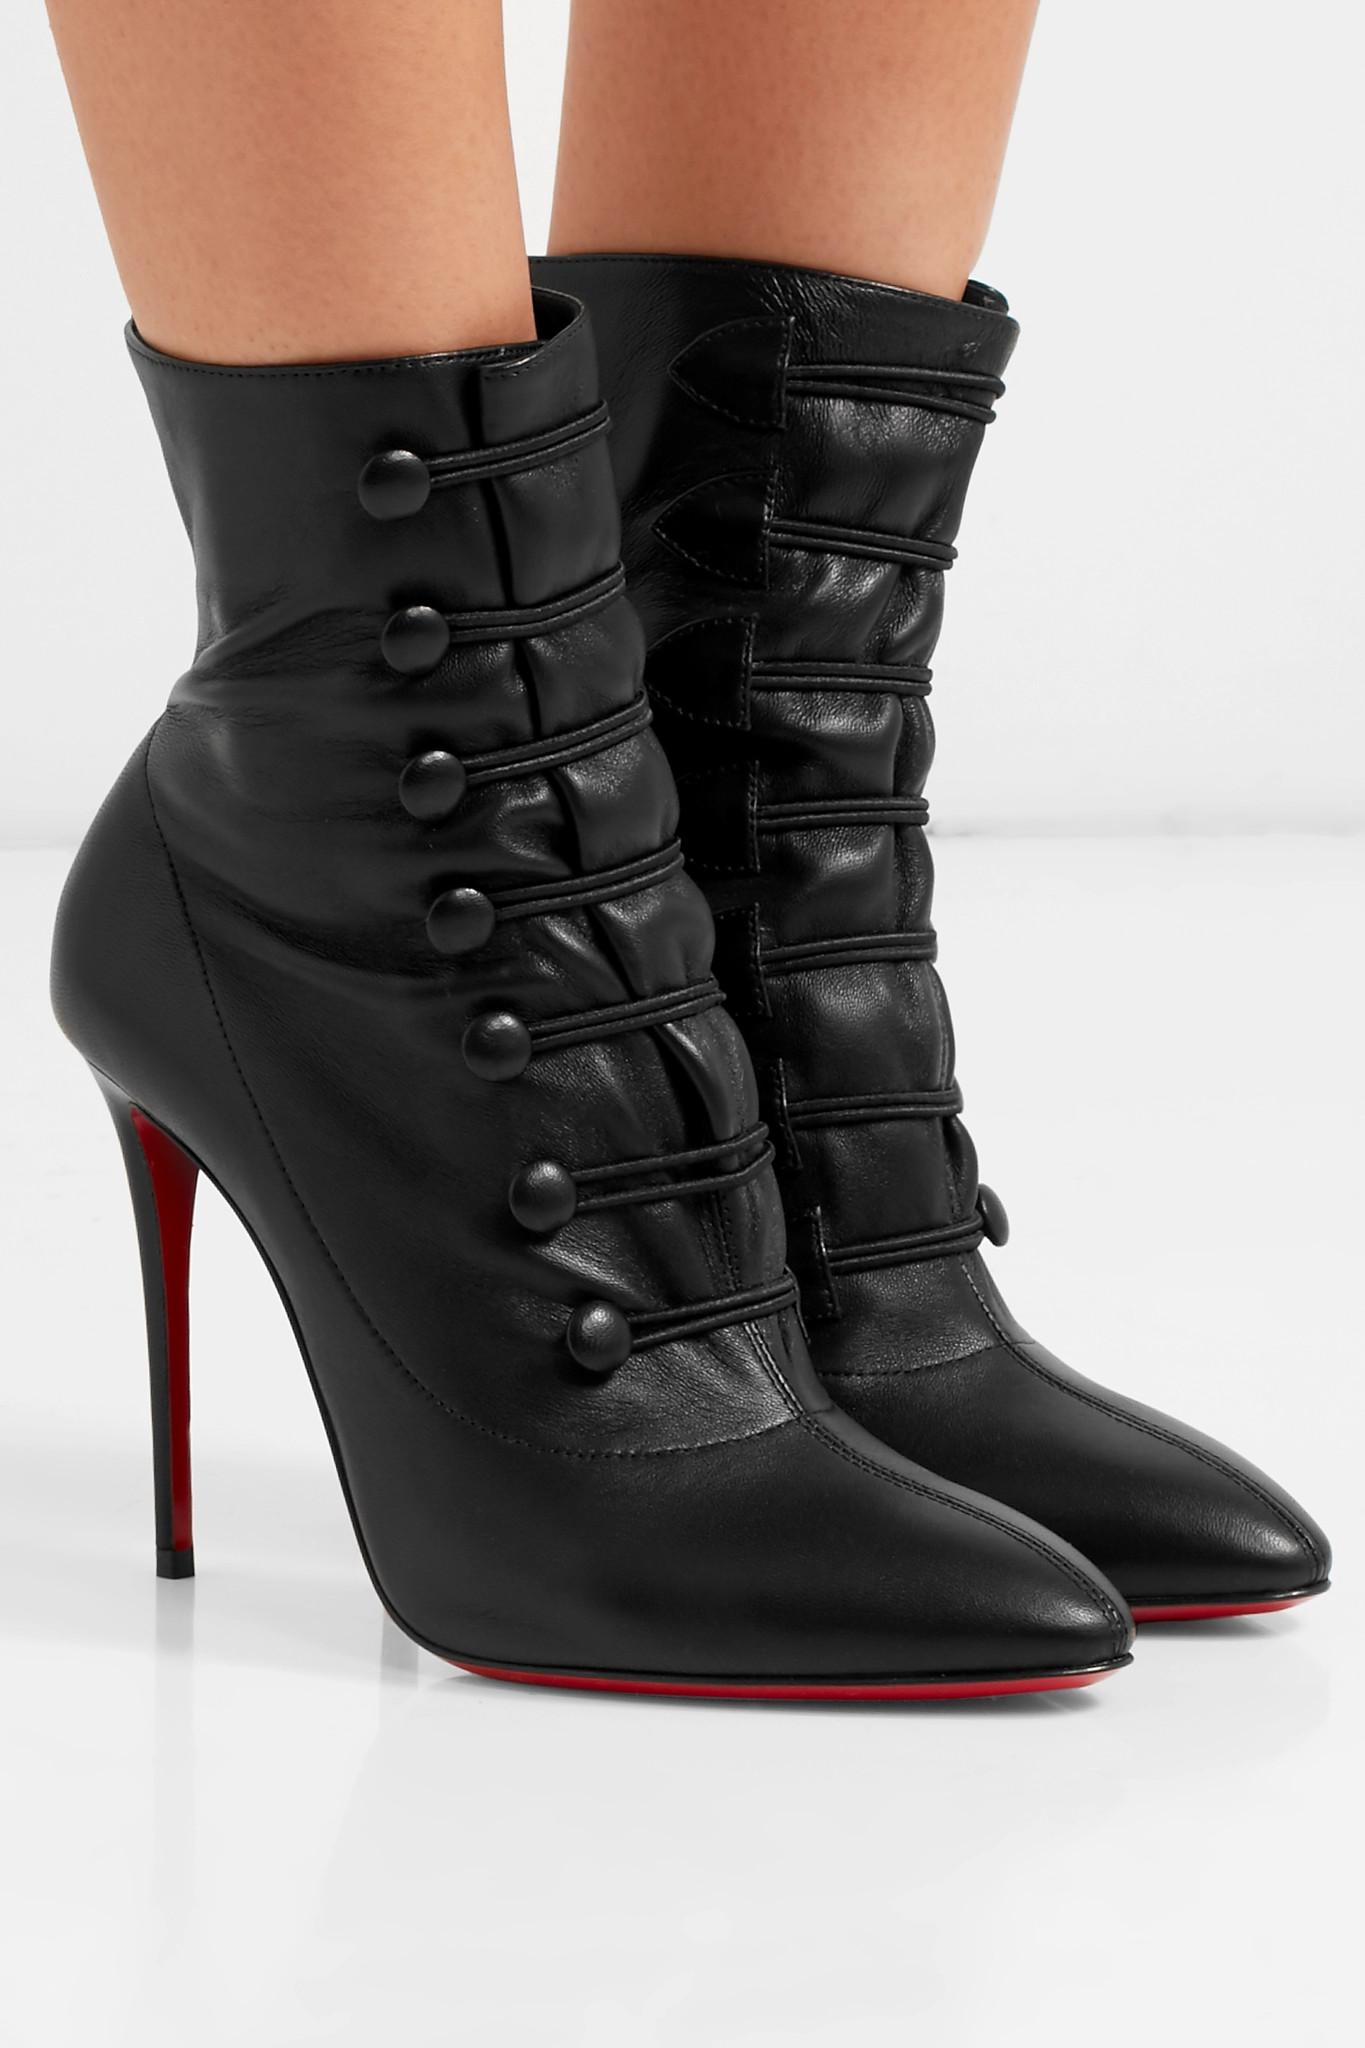 d0b2225a8acc Christian Louboutin - Women s French Tutu 85 Leather Booties - Black - Size  40 (10. View fullscreen